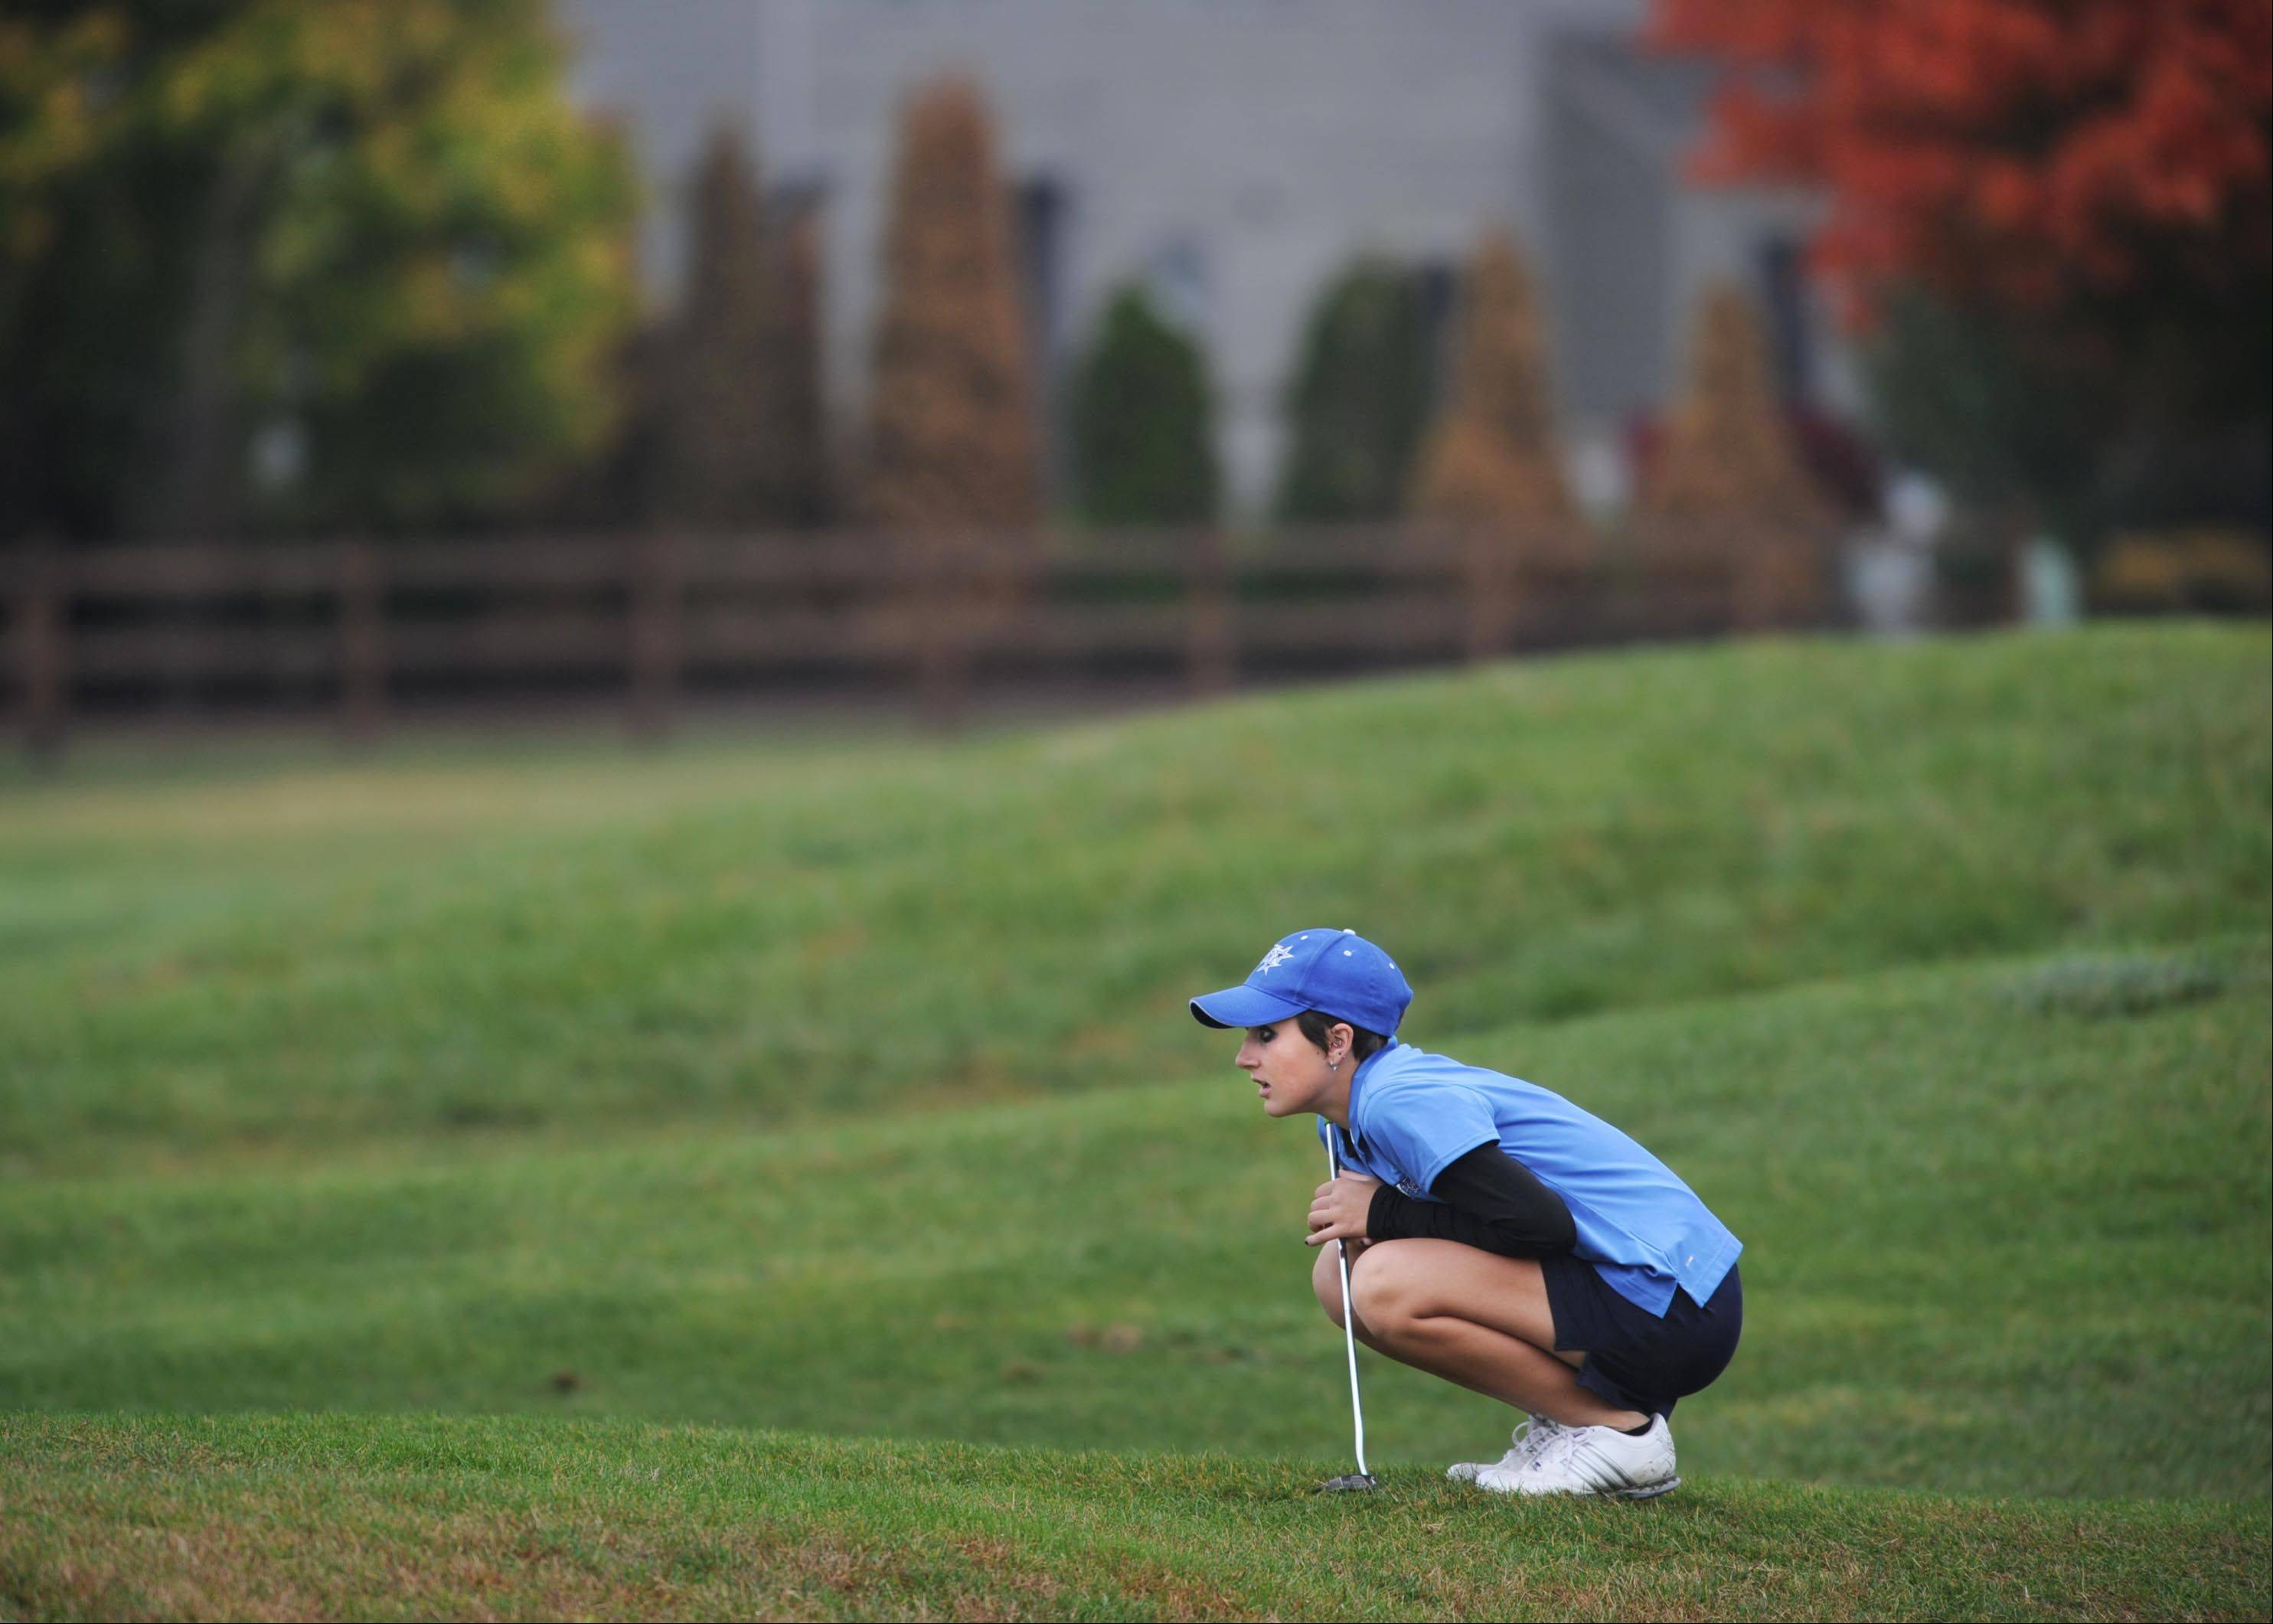 St. Charles North's Ariana Furrie lines up a shot at the Regional golf tournament Wednesday at the Golf Club of Illinois in Algonquin.